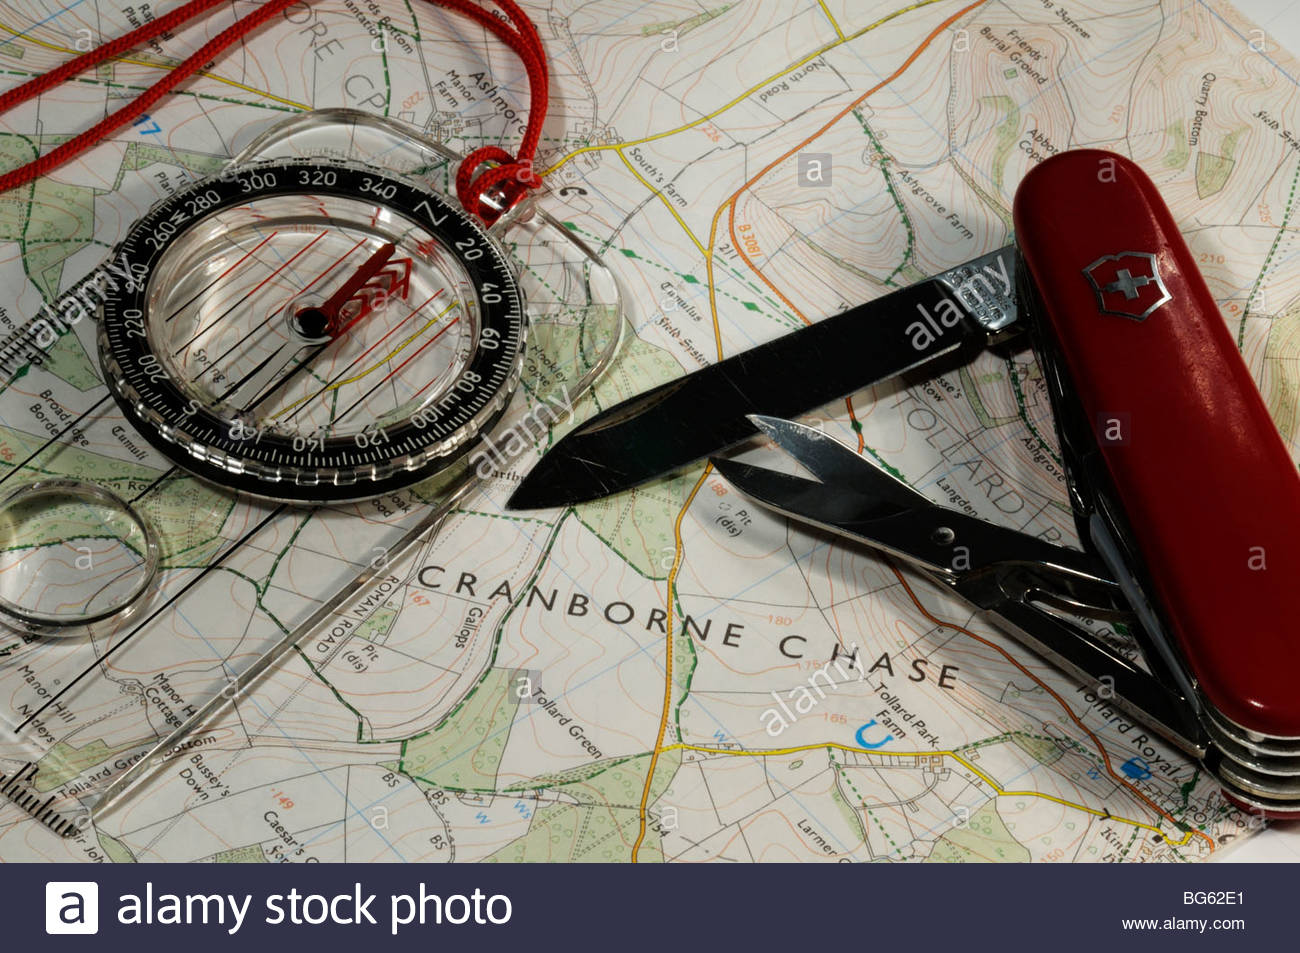 Close up image of the Cranborne Chase shown on map with compass and Swiss army knife, England, UK - Stock Image